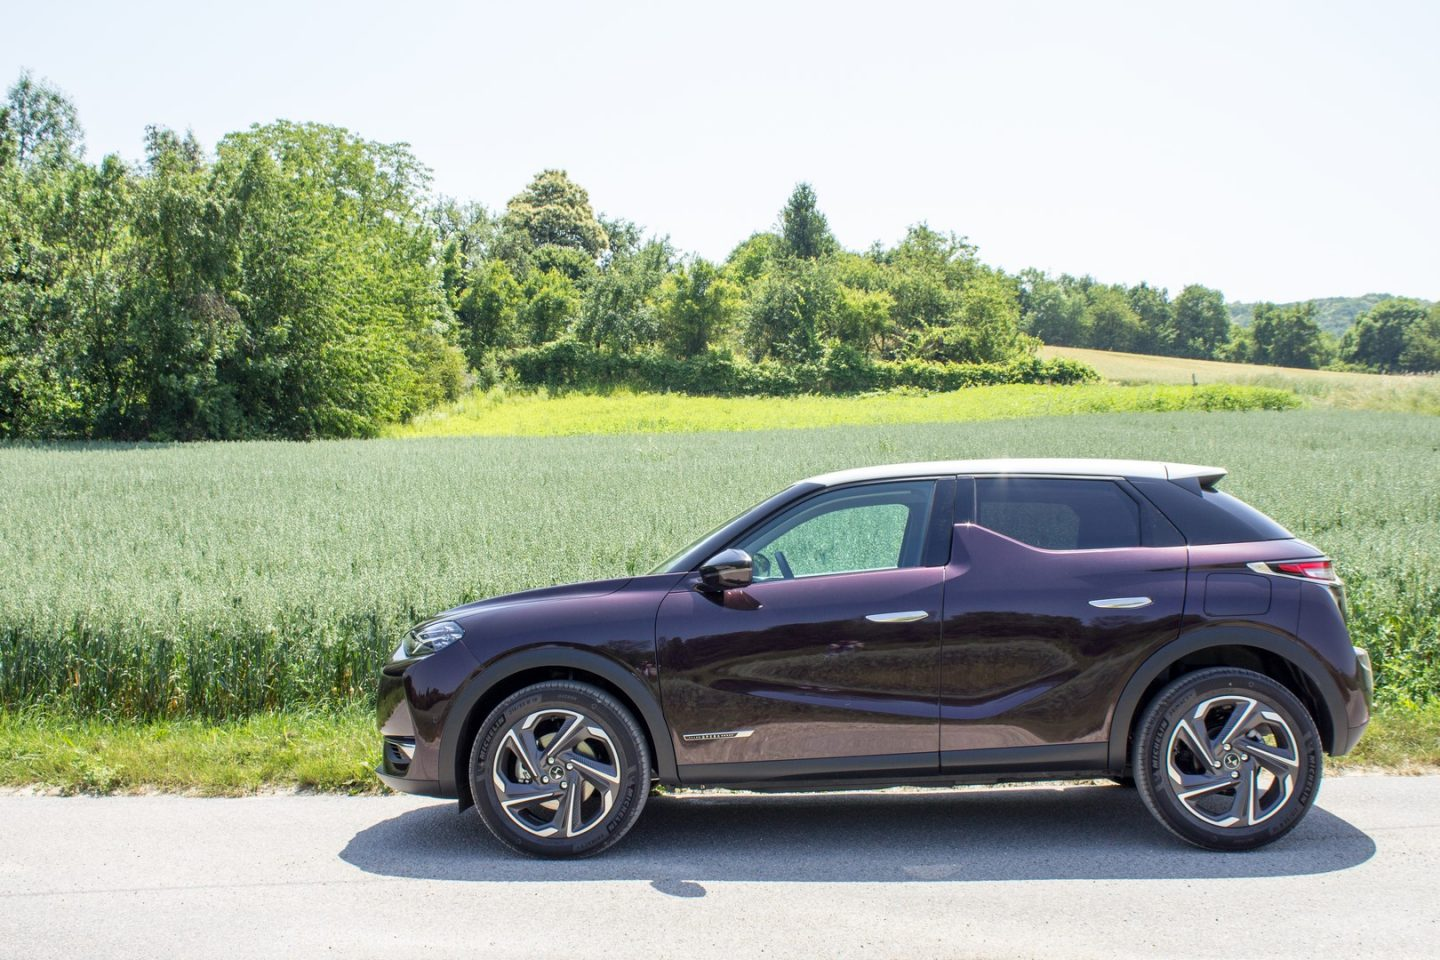 2018 - [DS Automobiles] DS 3 Crossback (D34) - Page 39 IMG_6779-1440x960